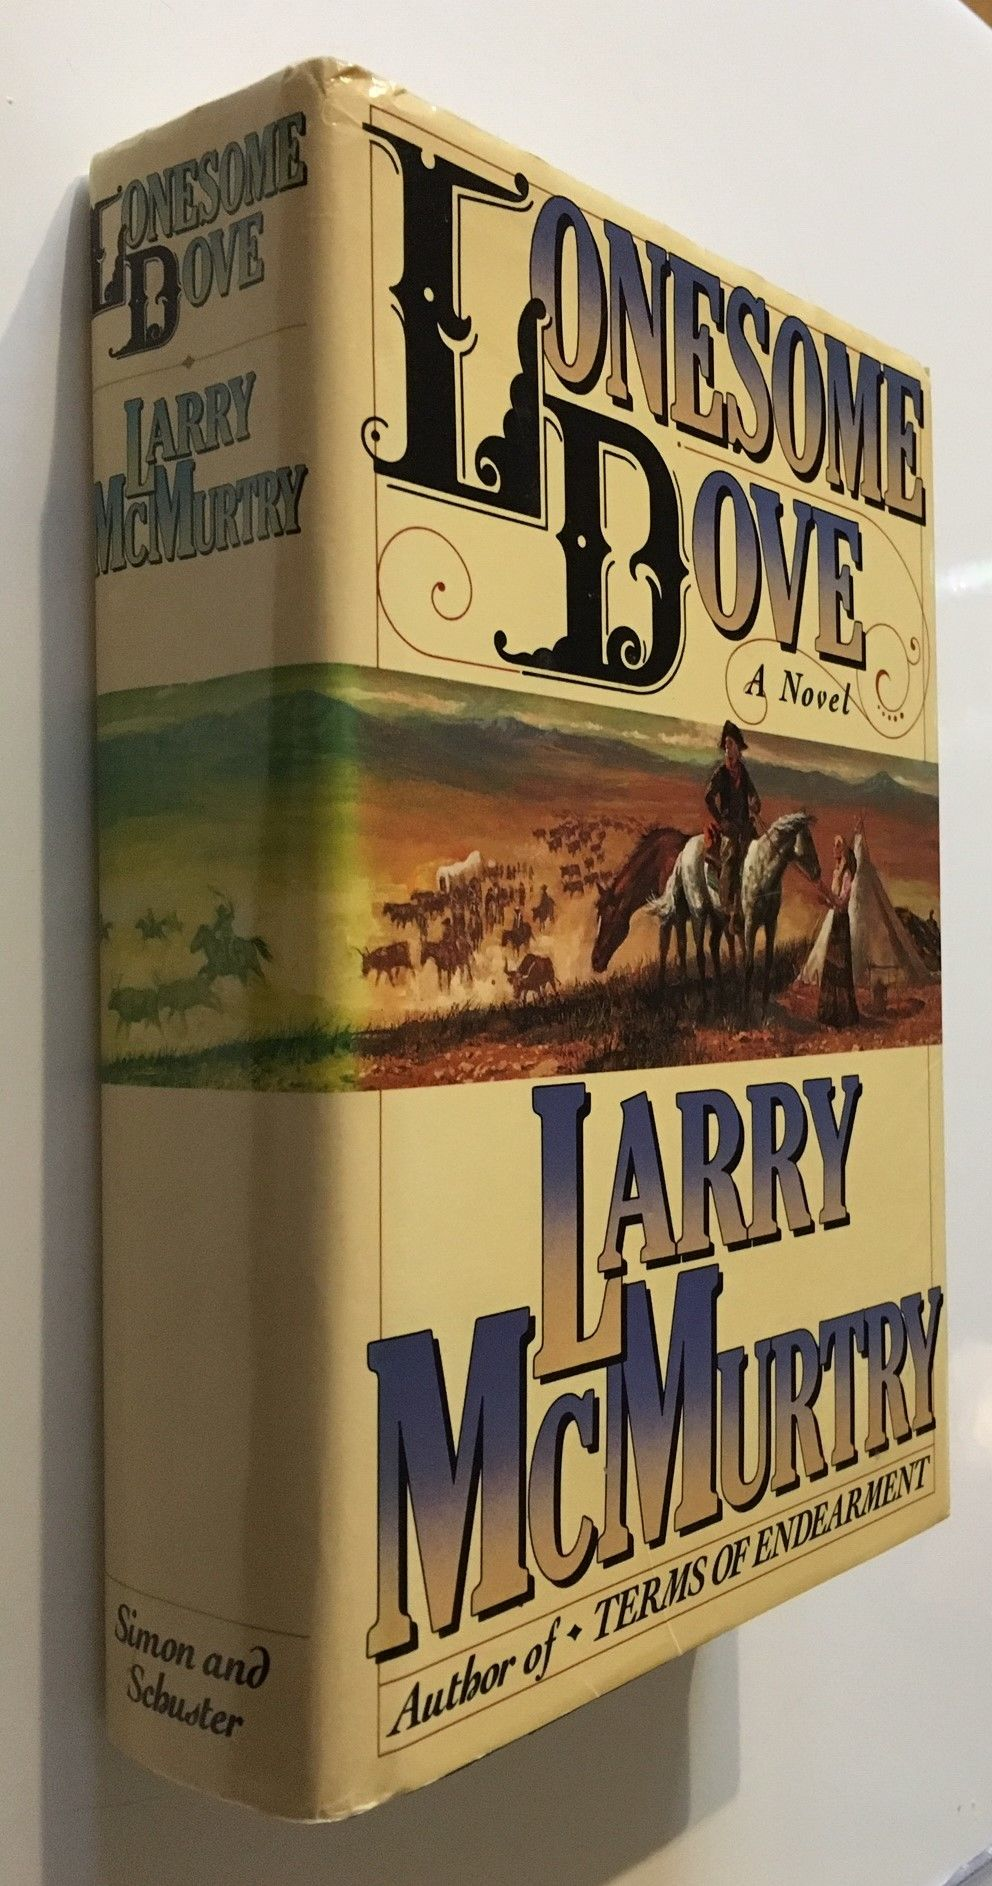 mcmurtry lonesome  9780671504205 - Lonesome Dove by Larry McMurtry